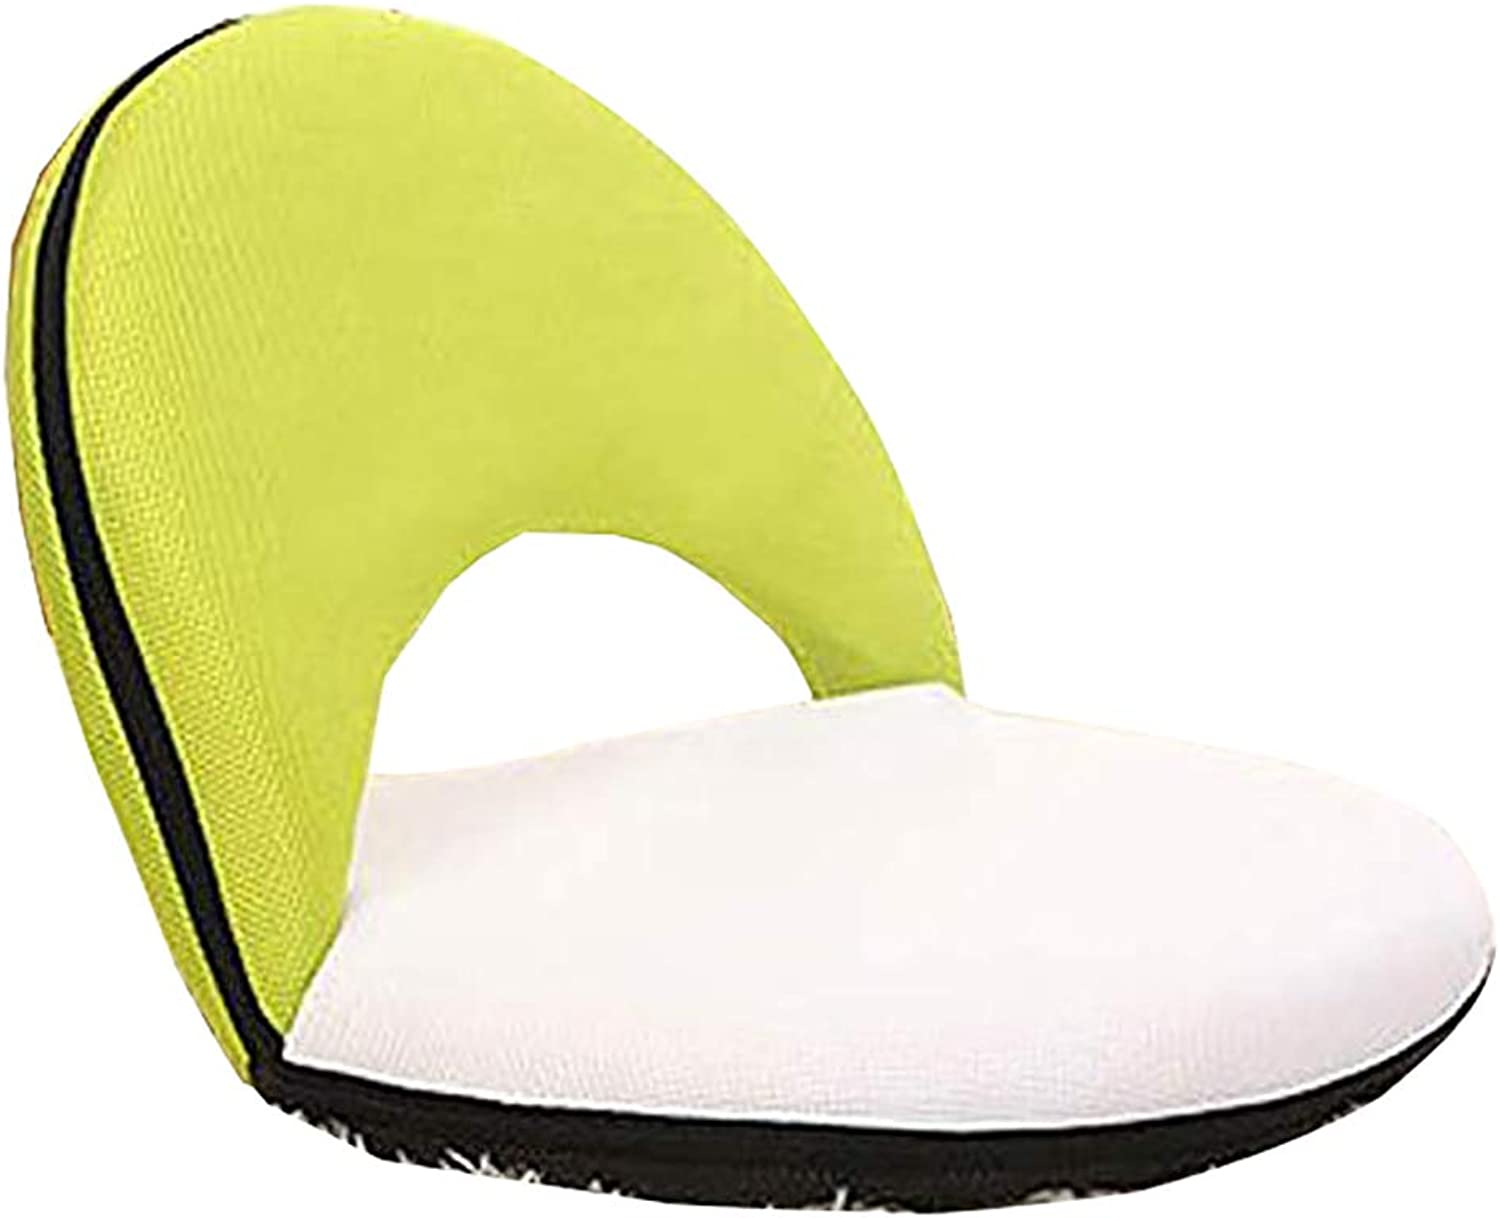 Lazy Couch Legless Chair Casual Stool Removable and Washable Folding Sitting Chair Bed Chair (color   C)